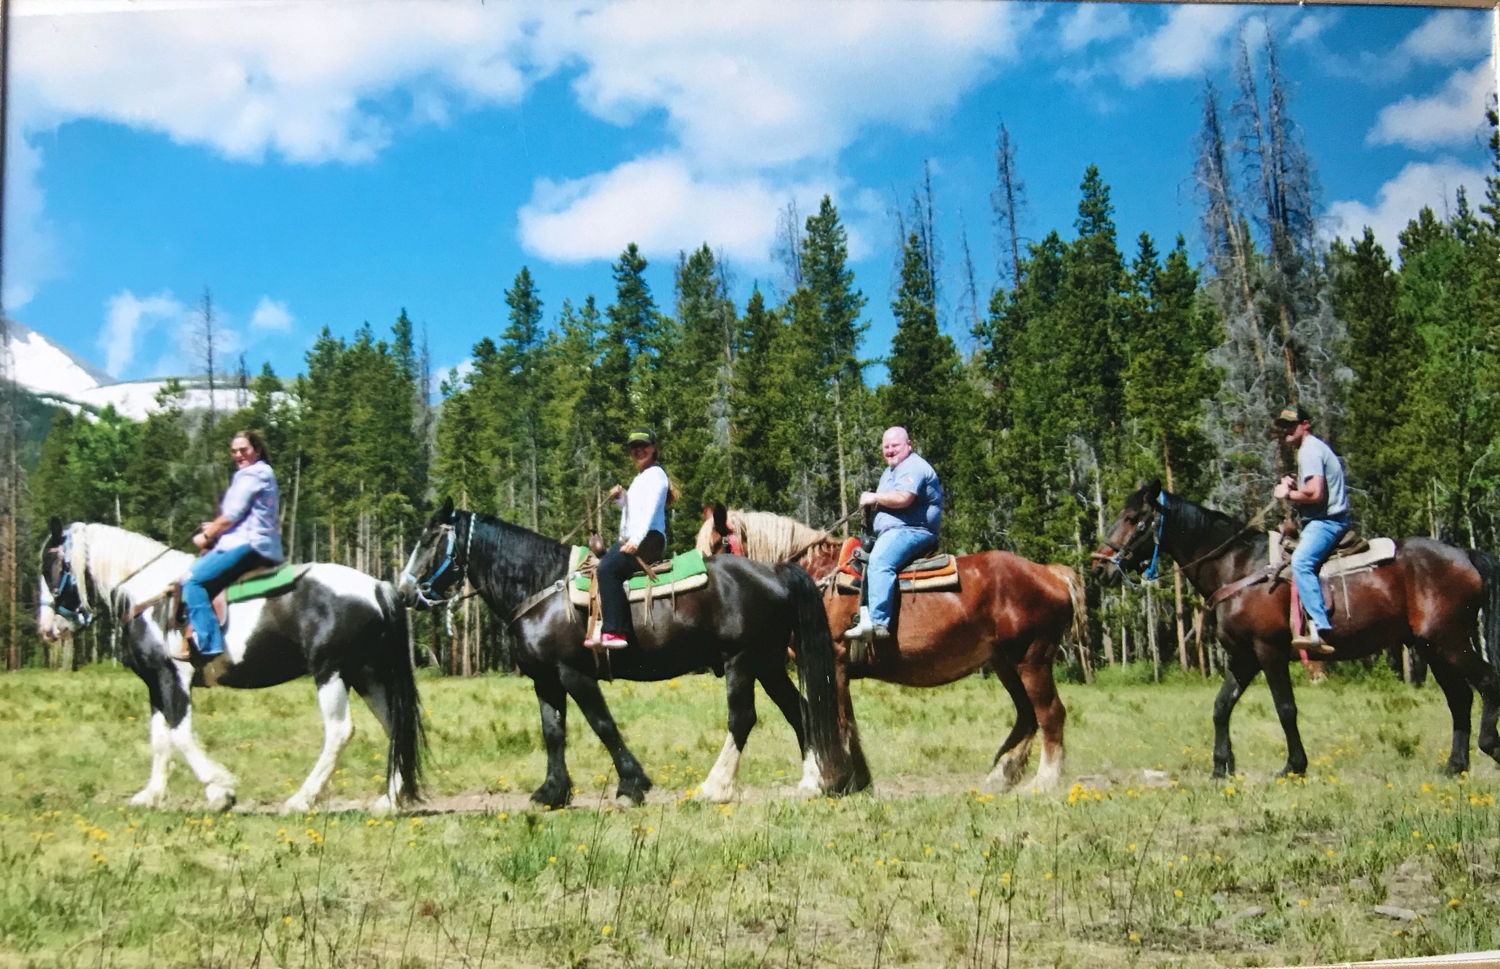 Horseback riding in the Colorado mountains with friends.